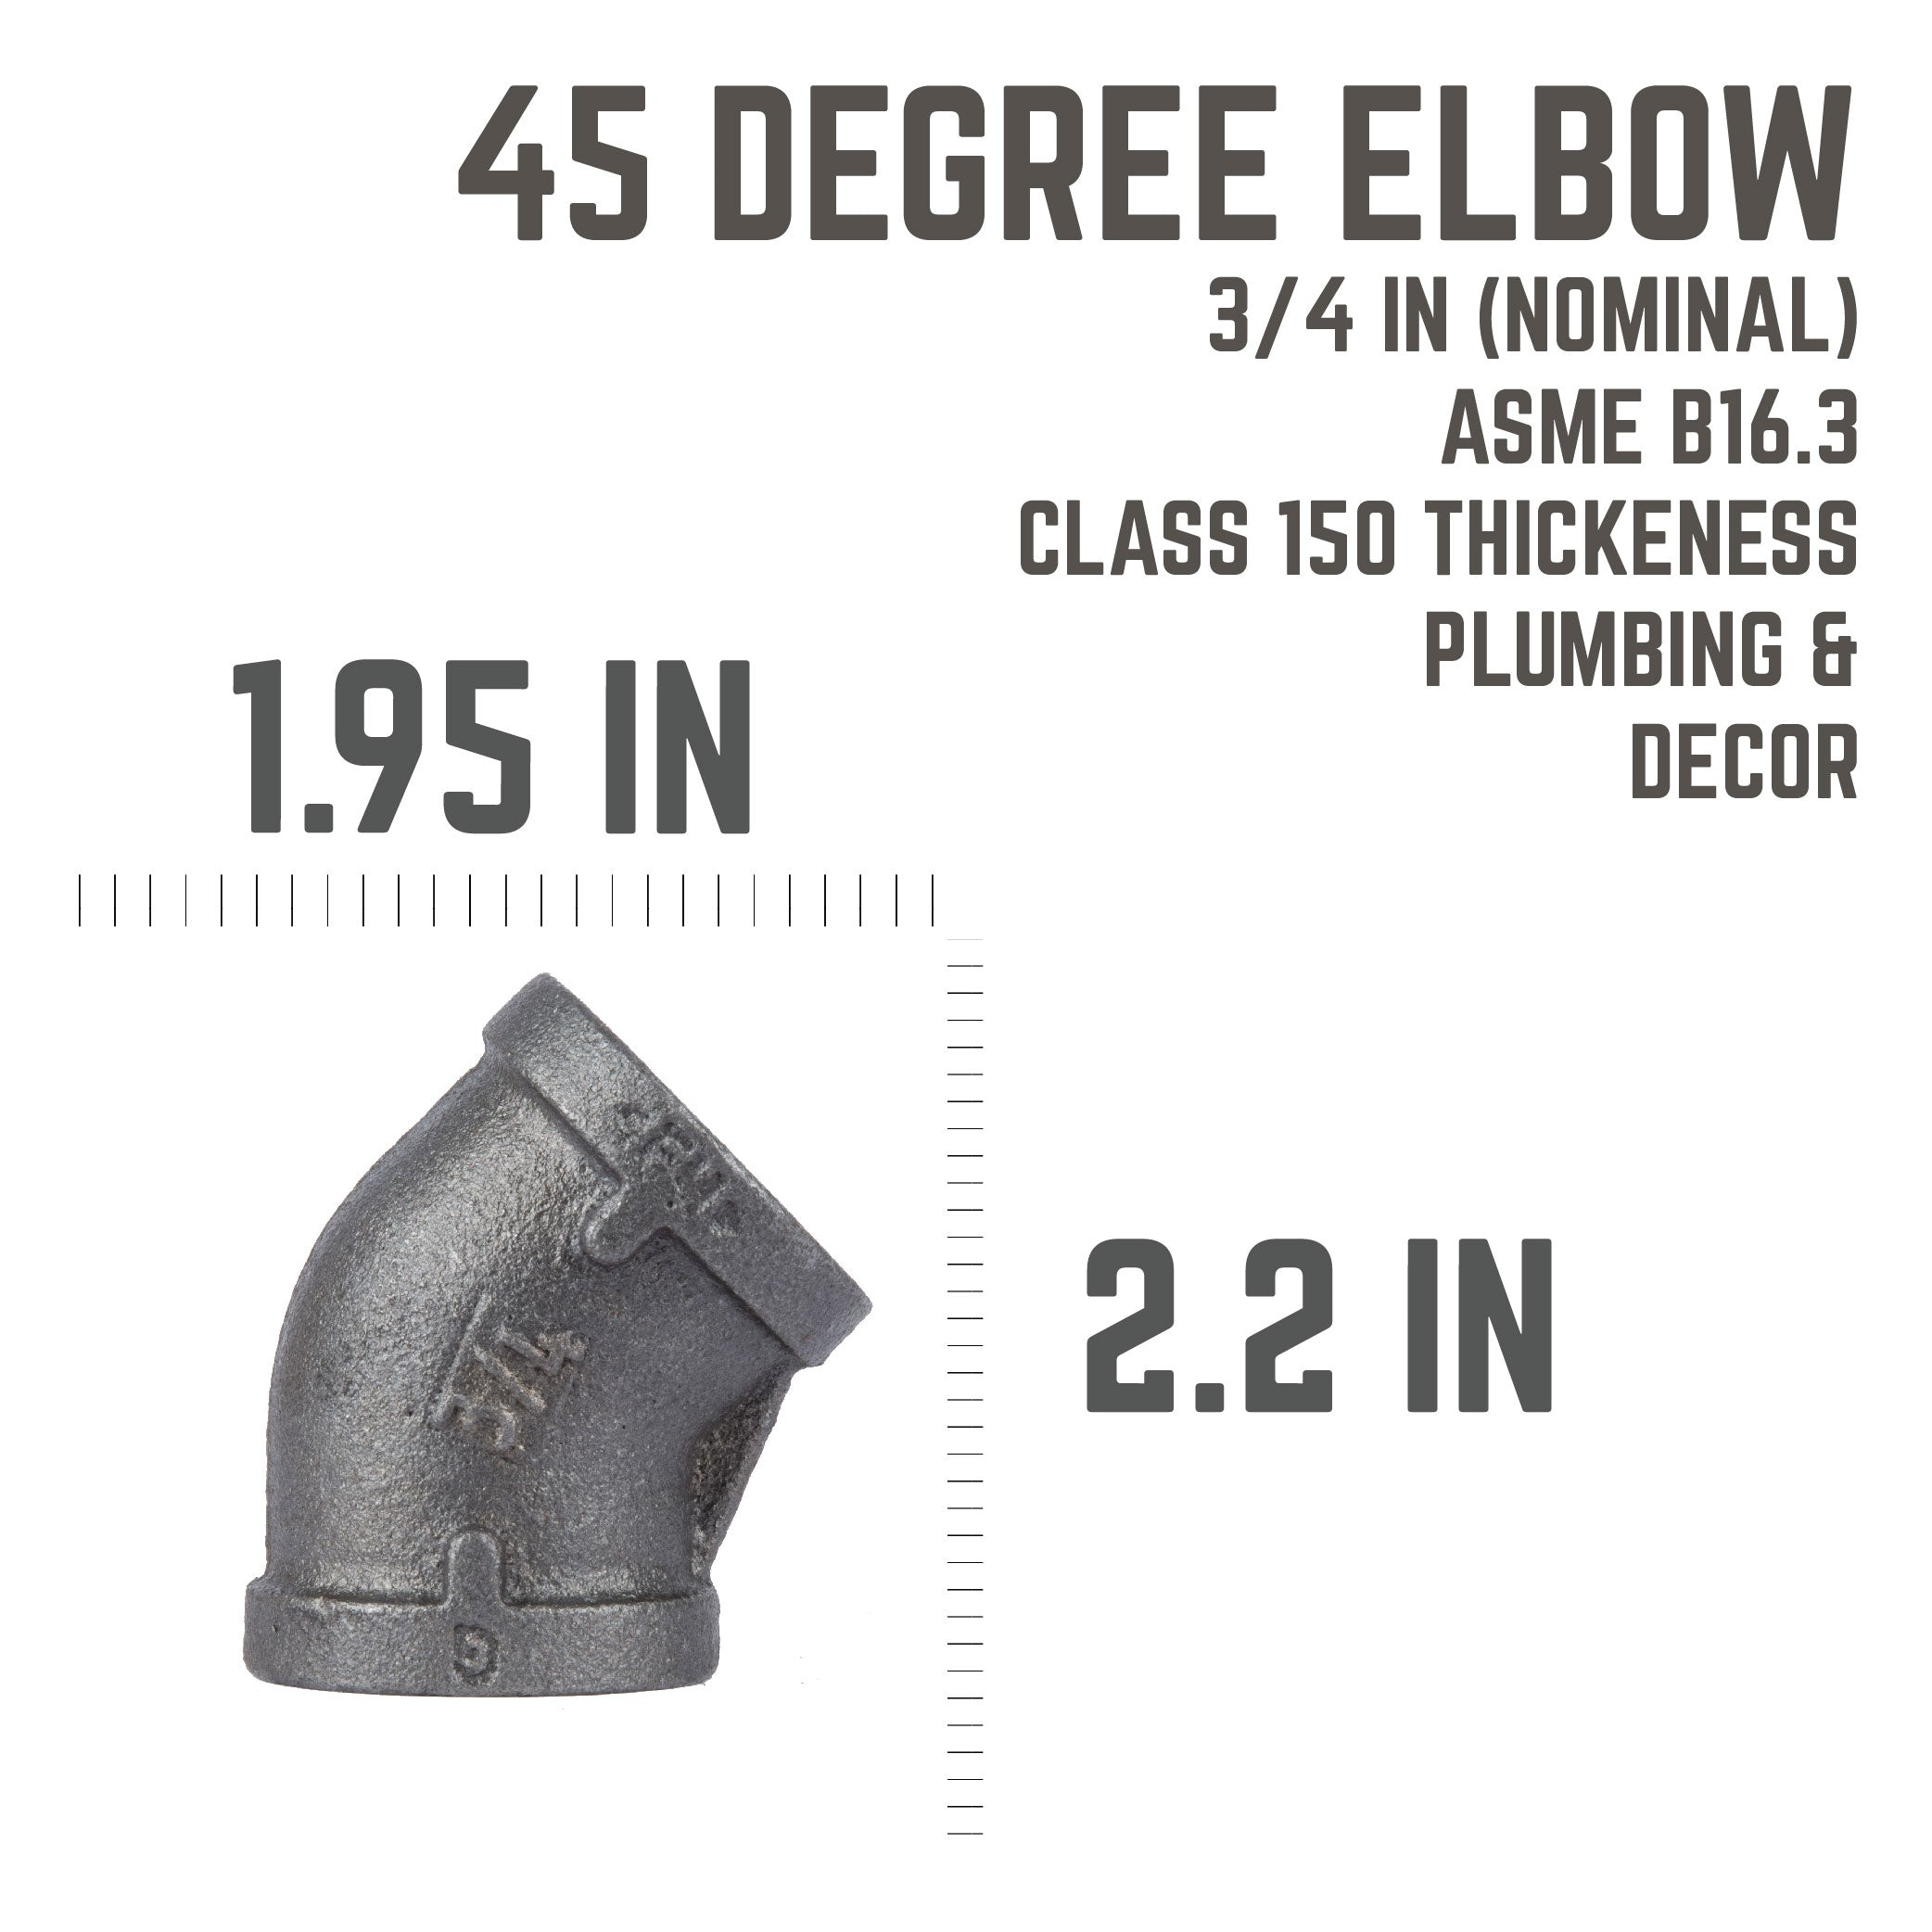 3/4 In Black 45 Elbow - Pipe Decor